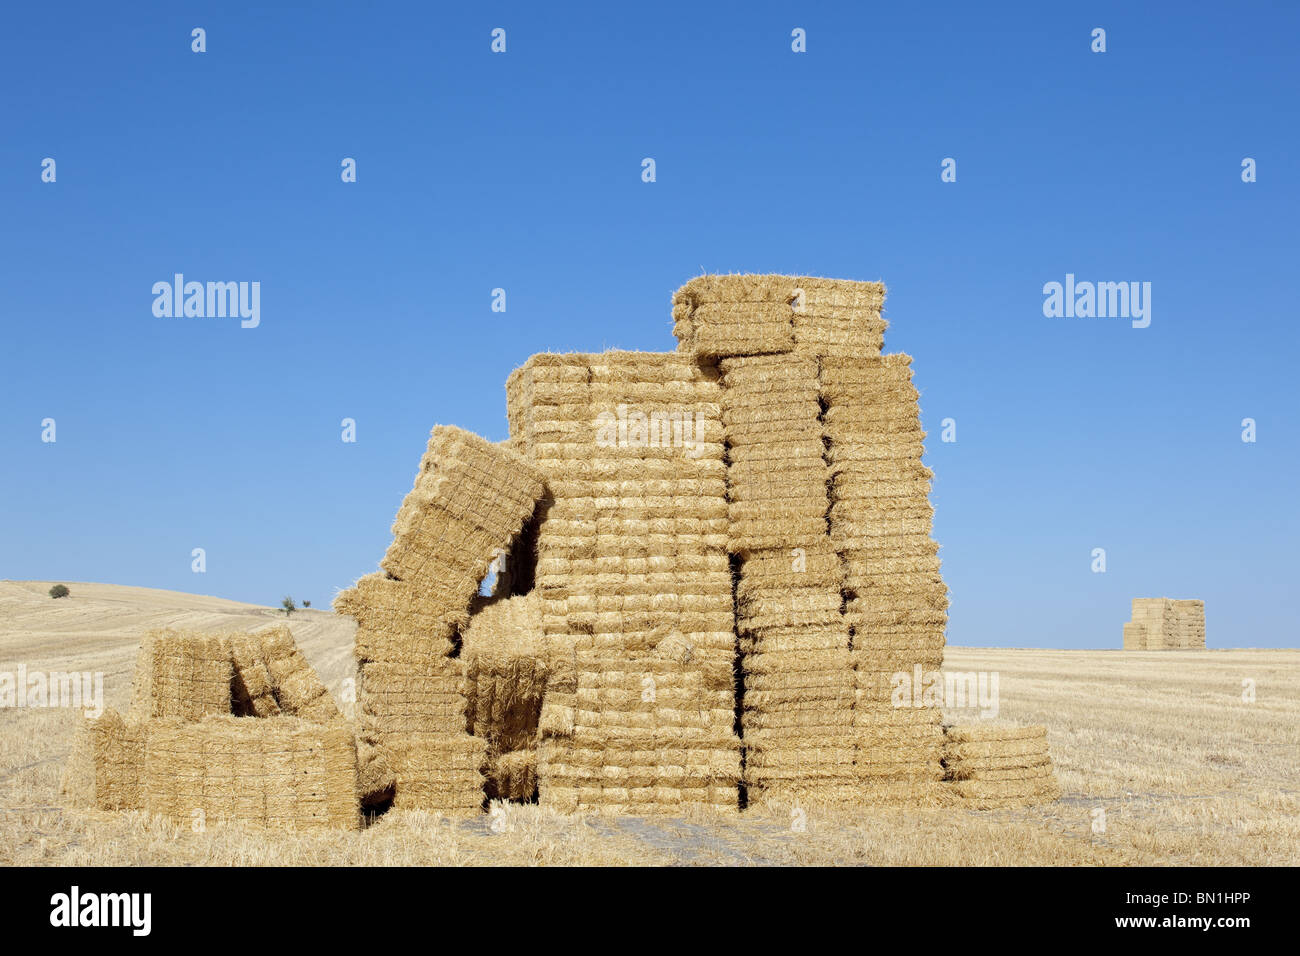 barn with square shape stack on columns cereal texture - Stock Image